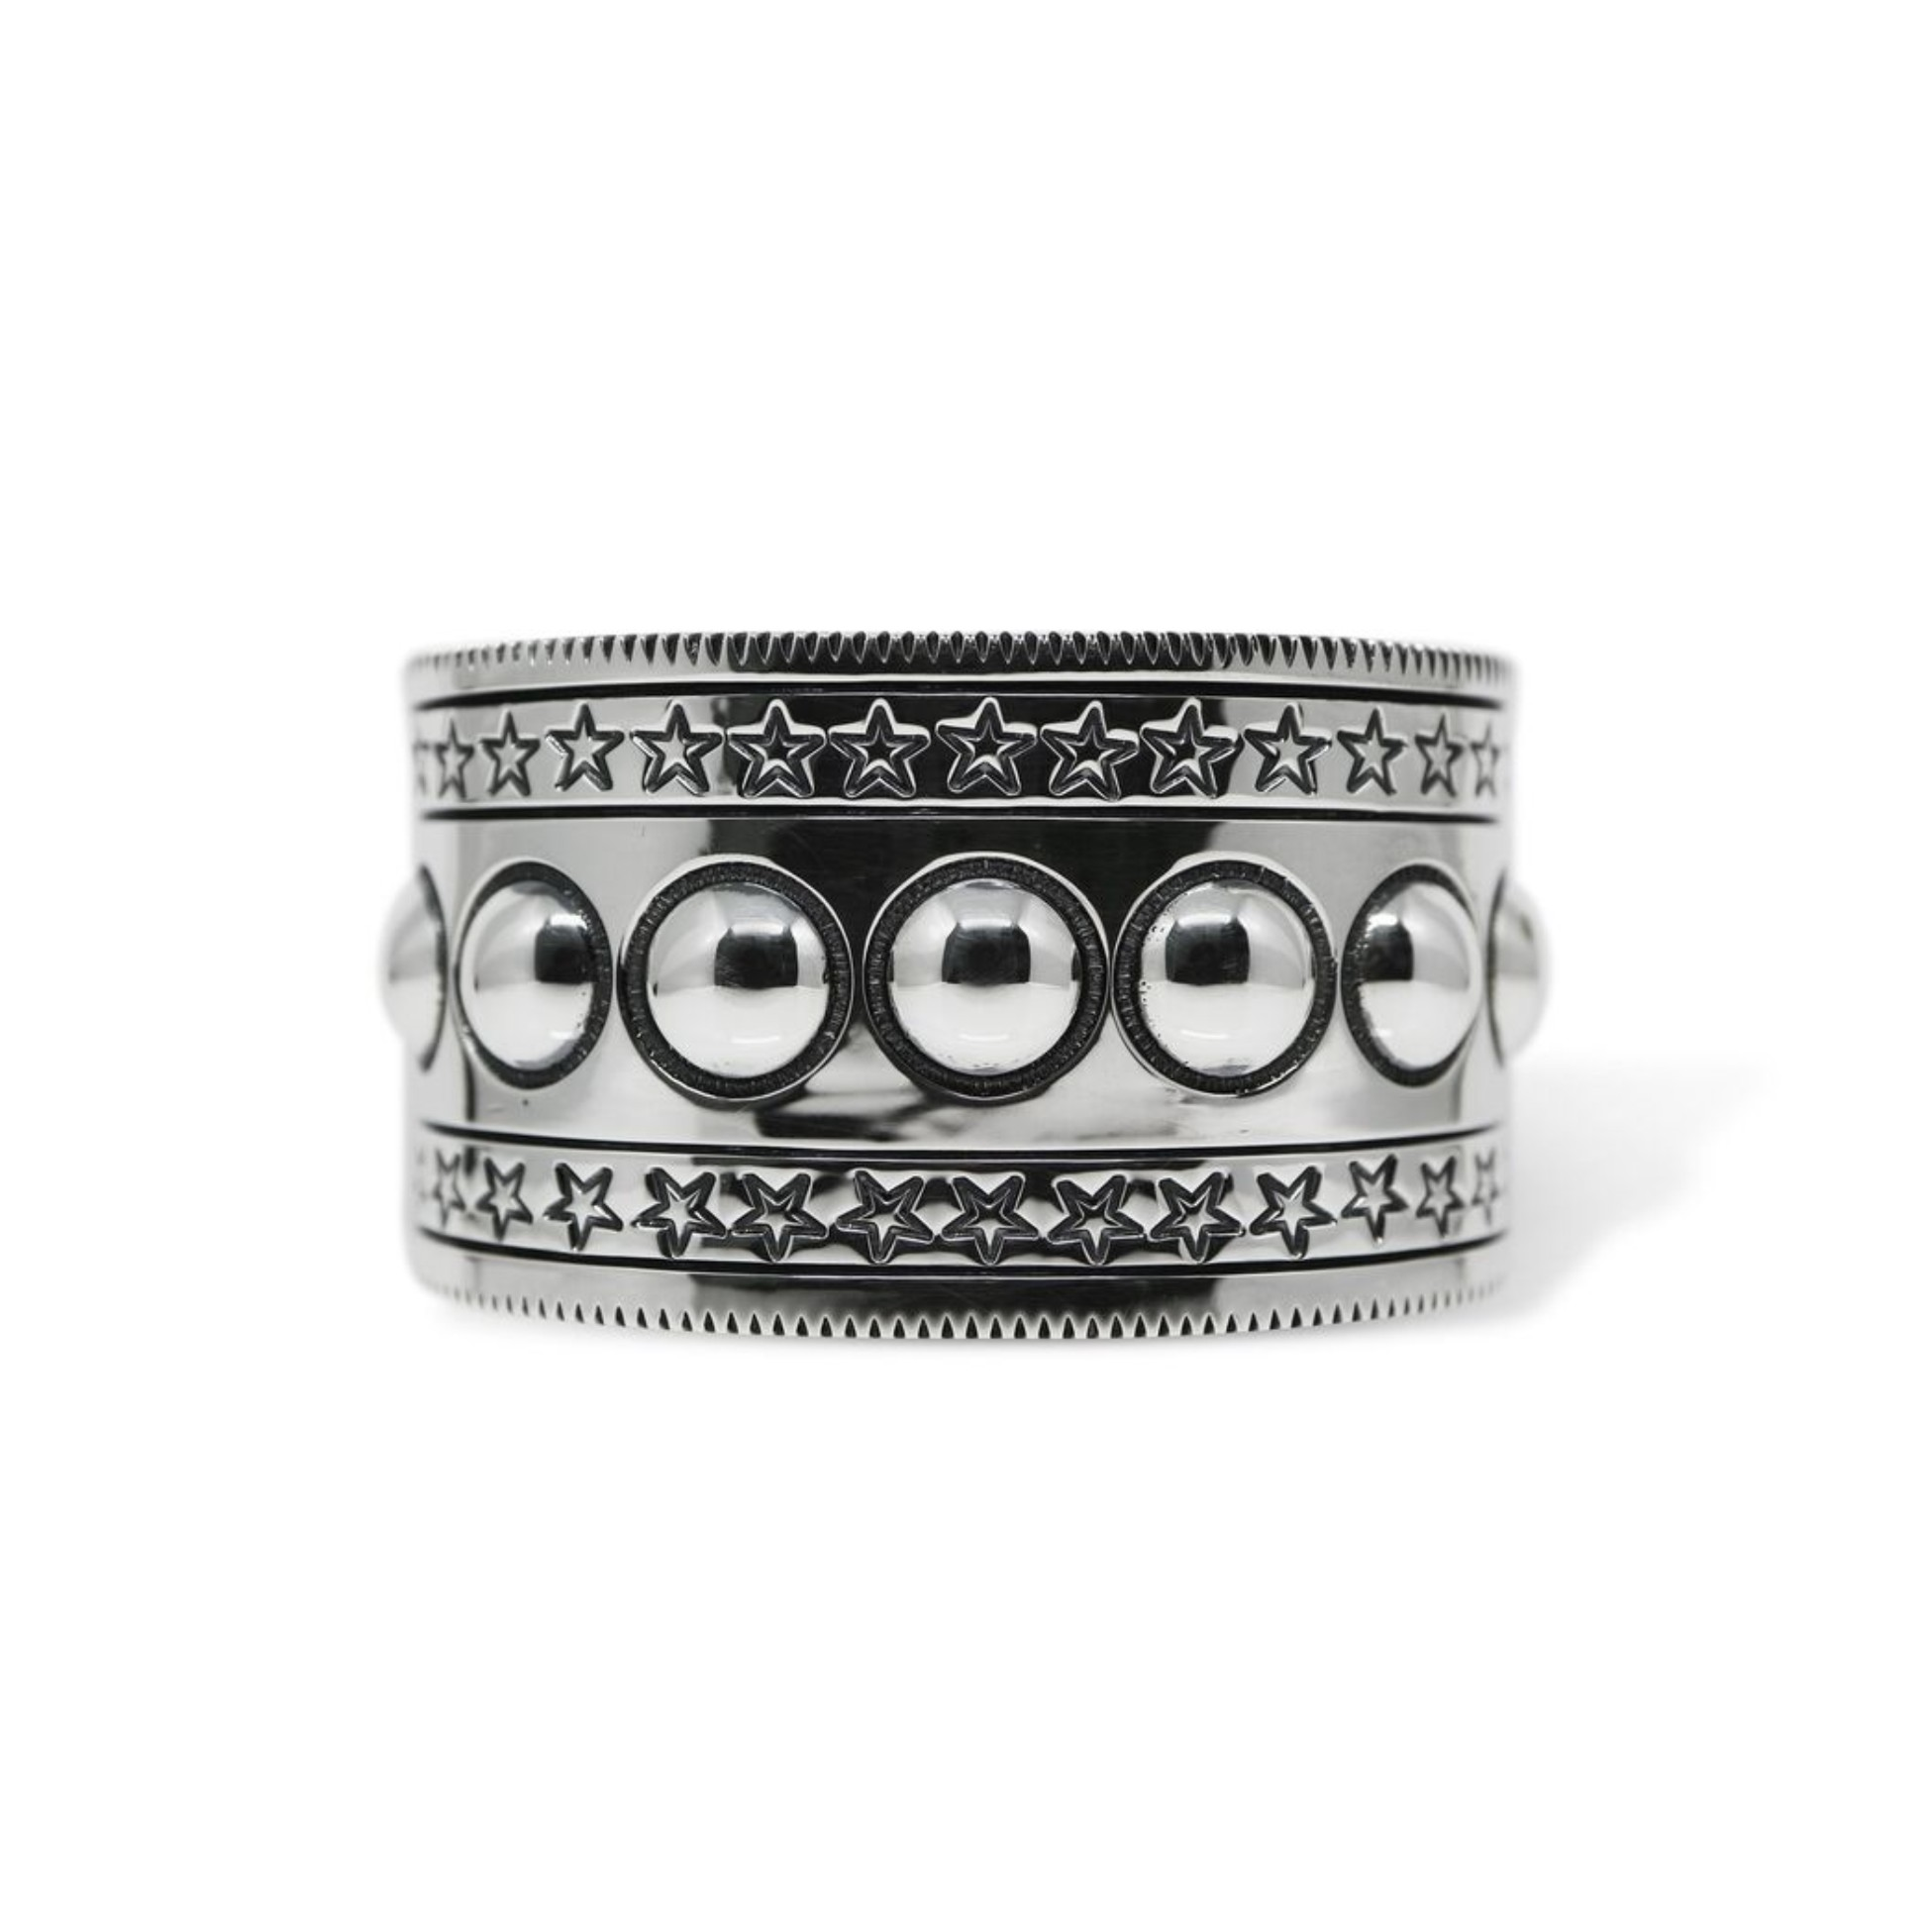 1.5 INCH 9 MOONS W / STARS COIN EDGE CUFF [USD $2450]